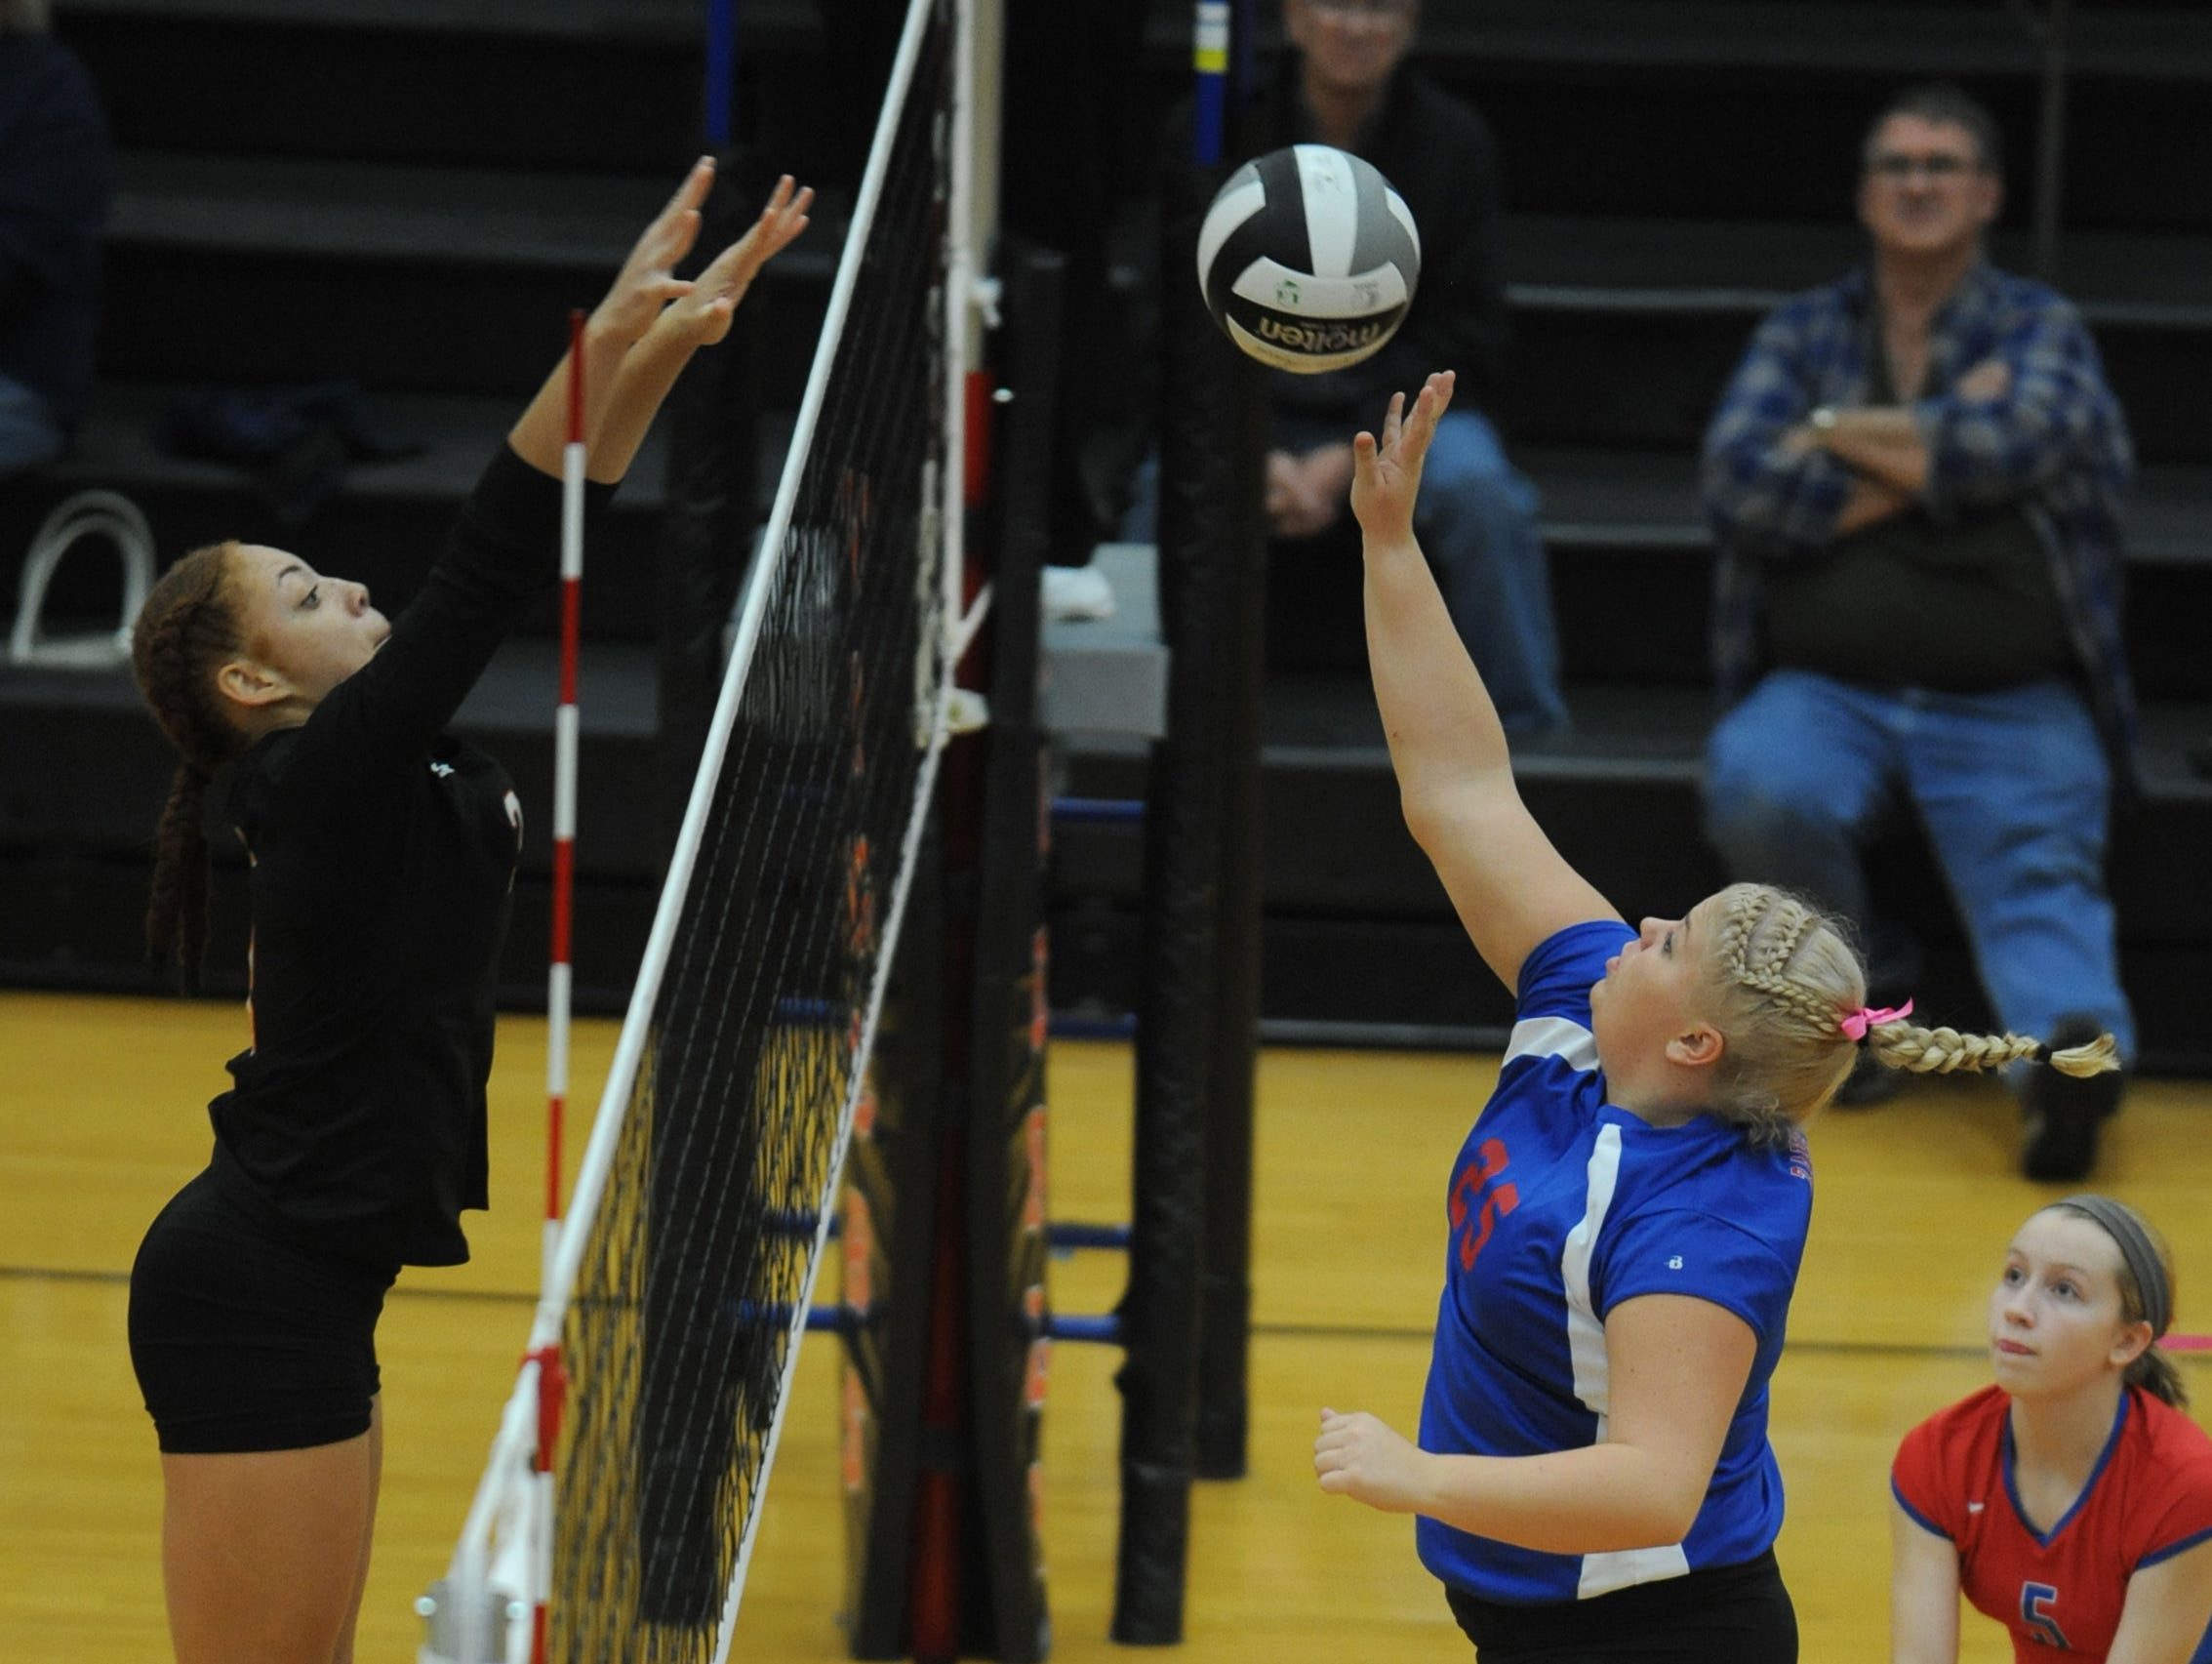 Zane Trace's Kelly Dresbach tips the ball over an Ironton opponent Wednesday at Waverly High School. Zane Trace defeated Ironton 3-1.